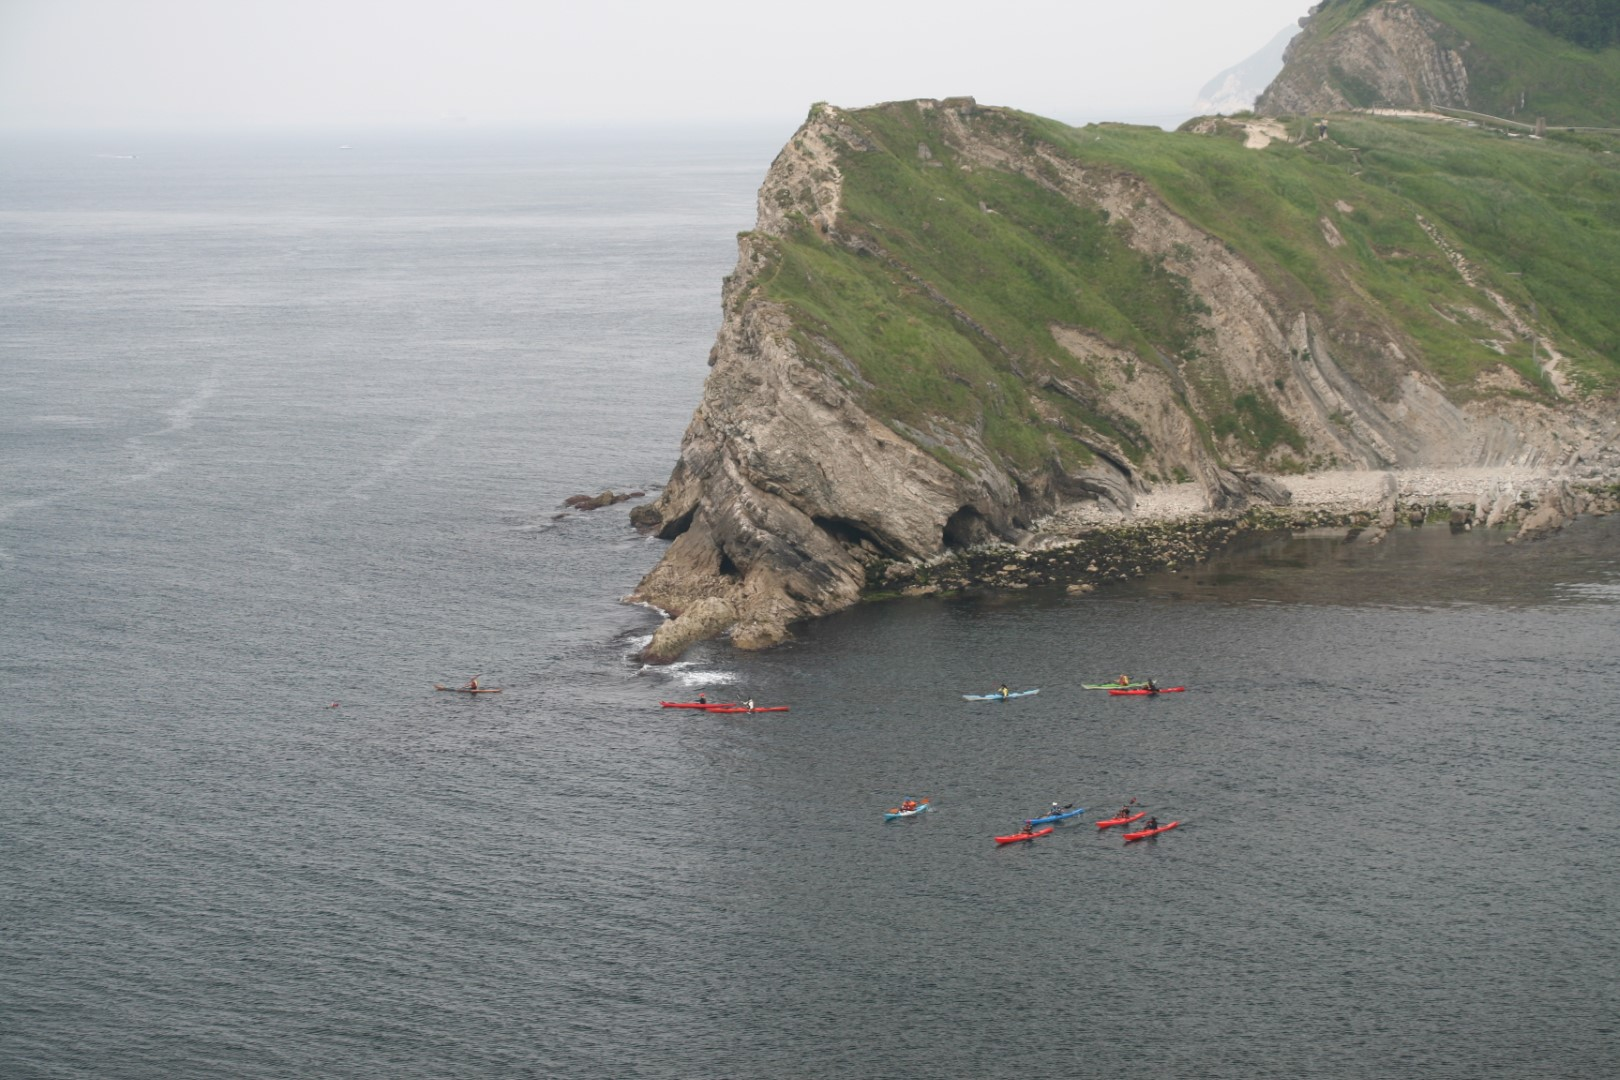 Kayakers heading out.